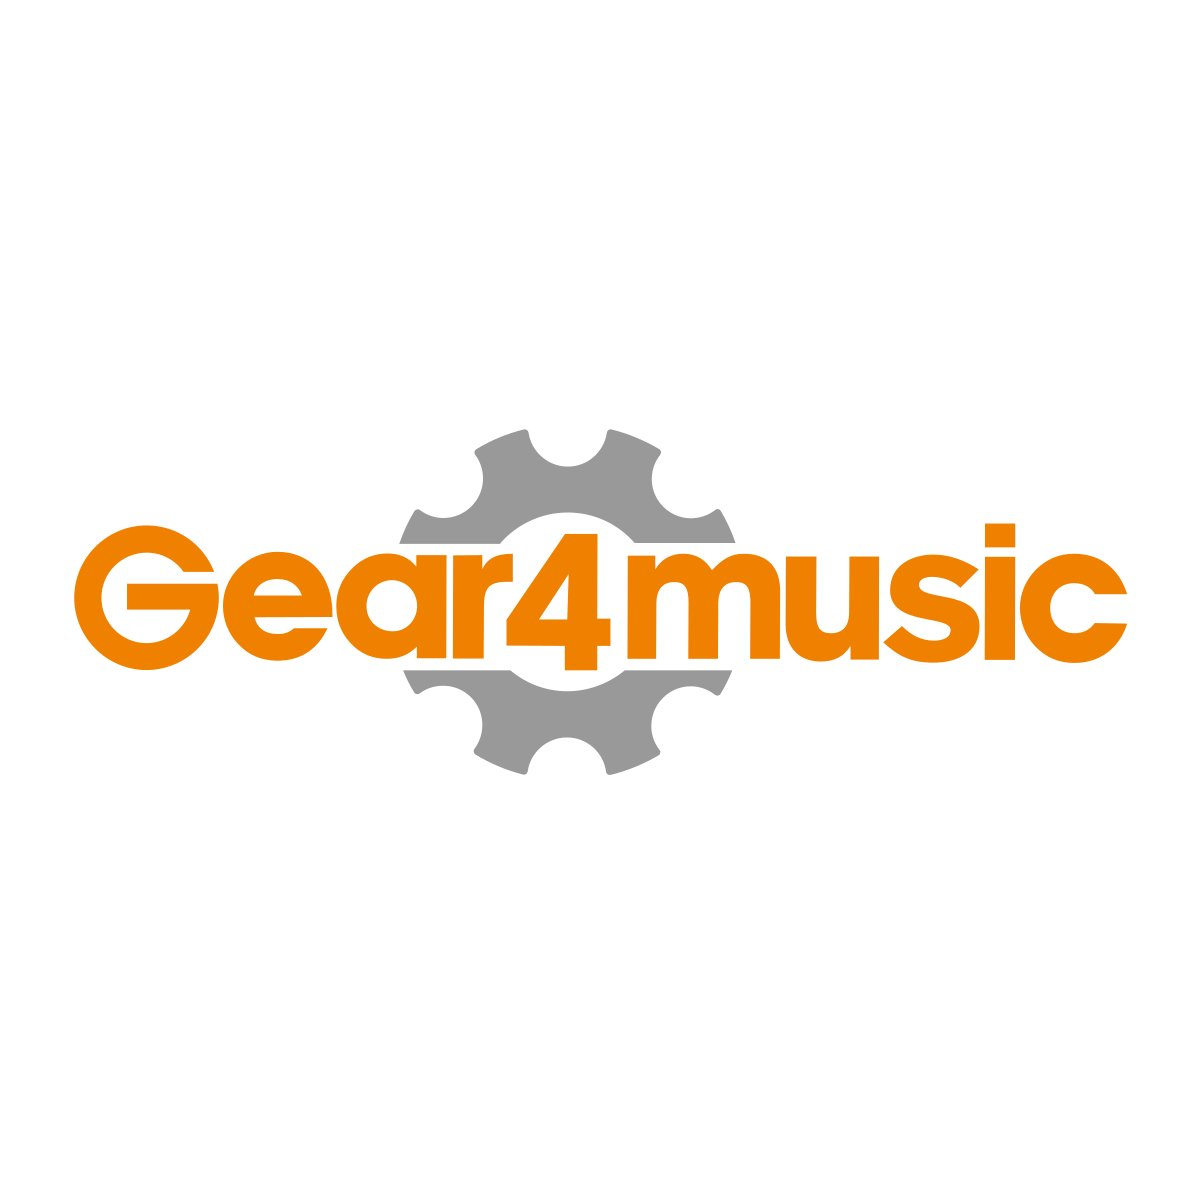 "CZ3 Pratos de Choque de 14"" de Gear4music"